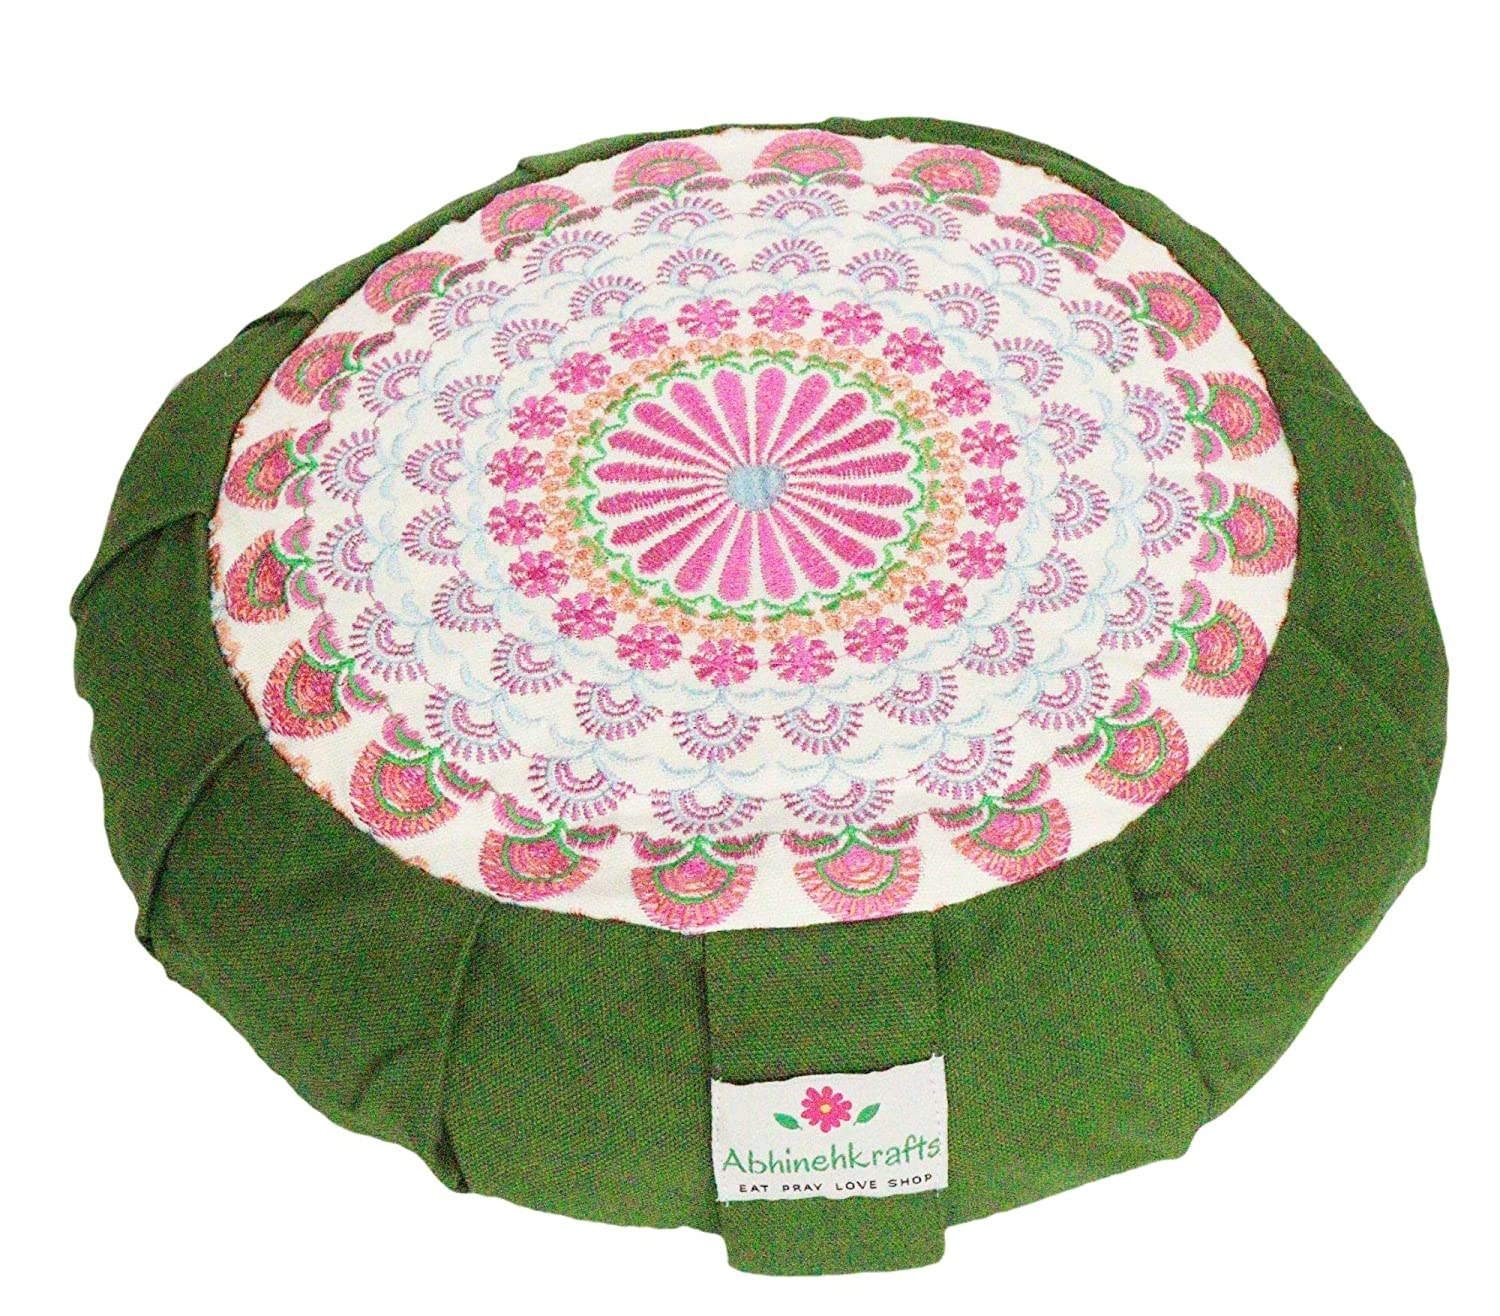 Embroidered Round Zafu Cotton Yoga Pillow Portable Zipped Cover Washable Green